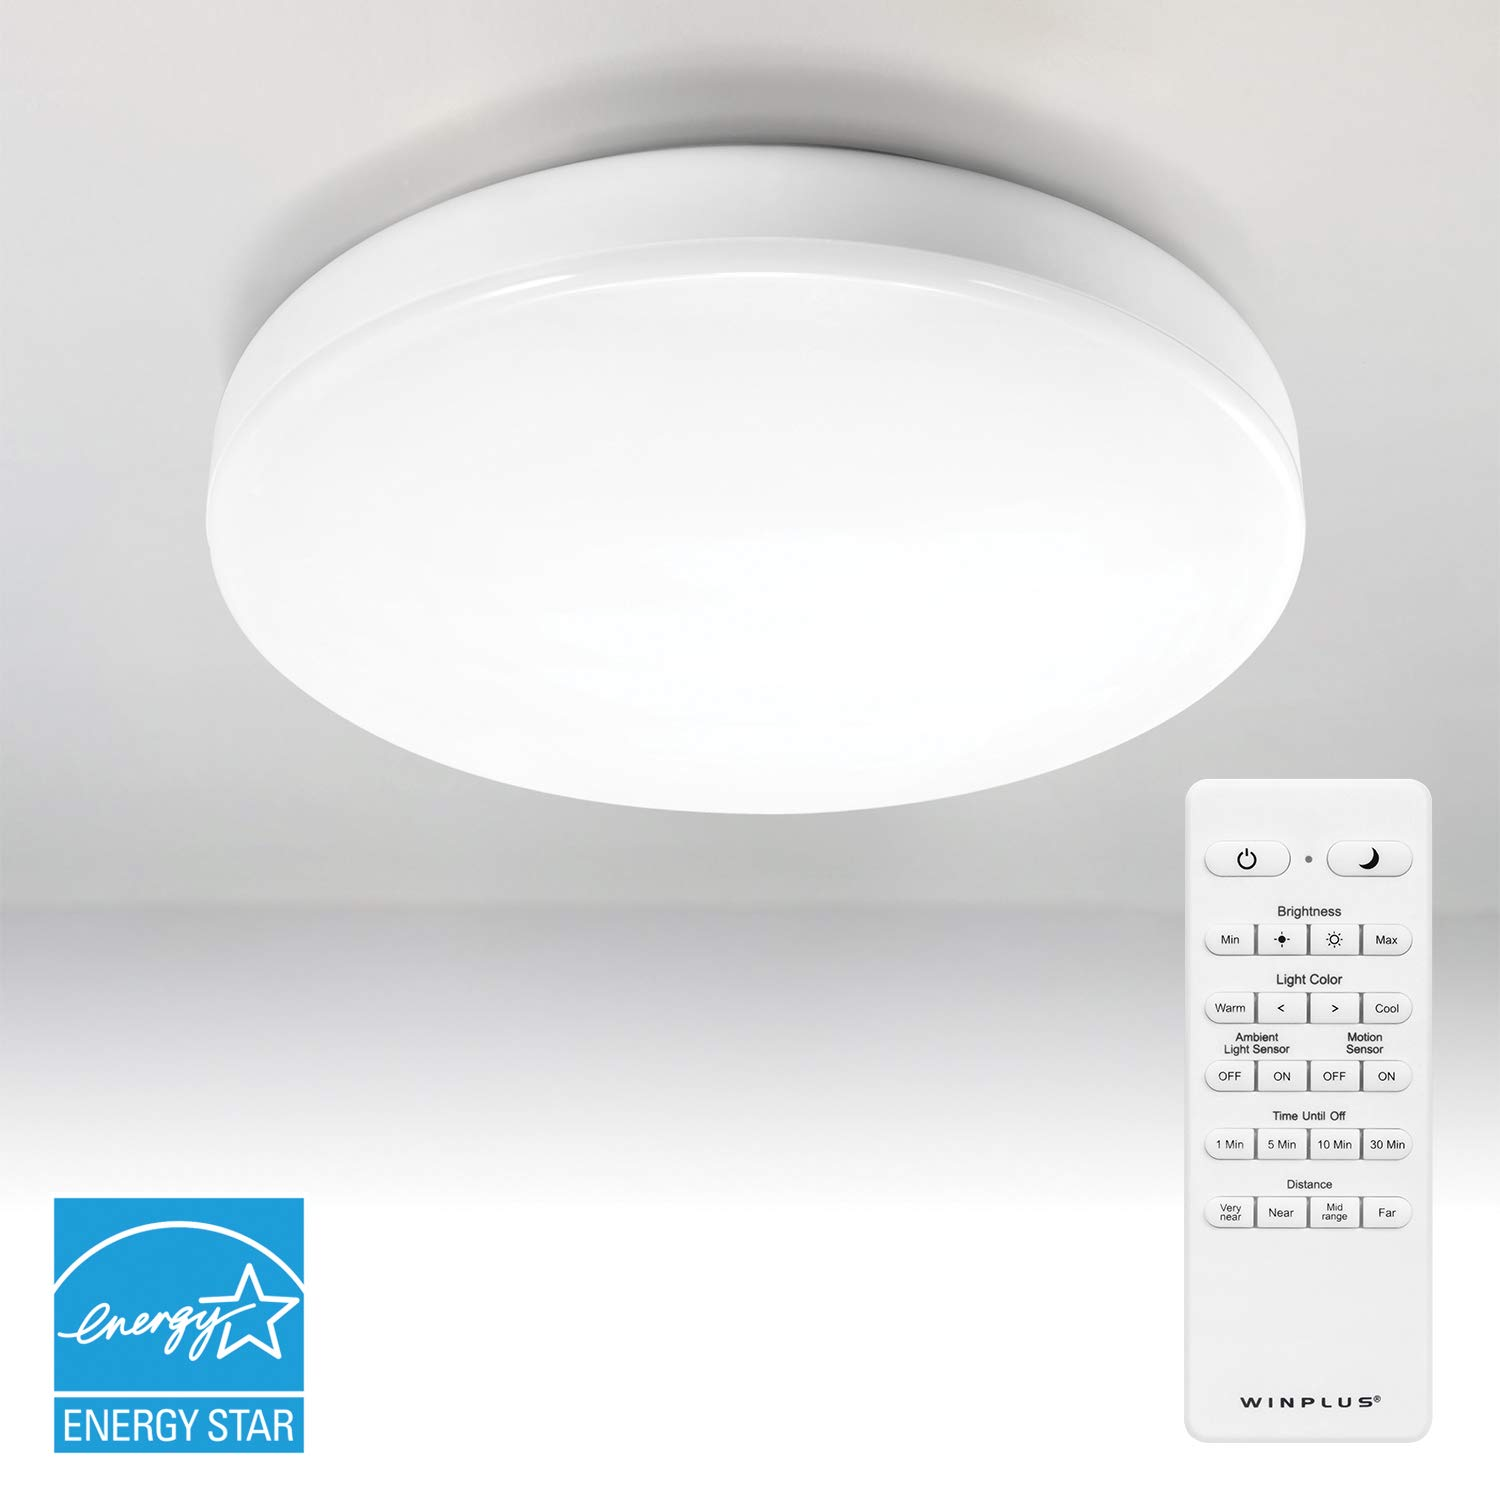 Winplus lm56123 6 control motion activated led ceiling light with remote white